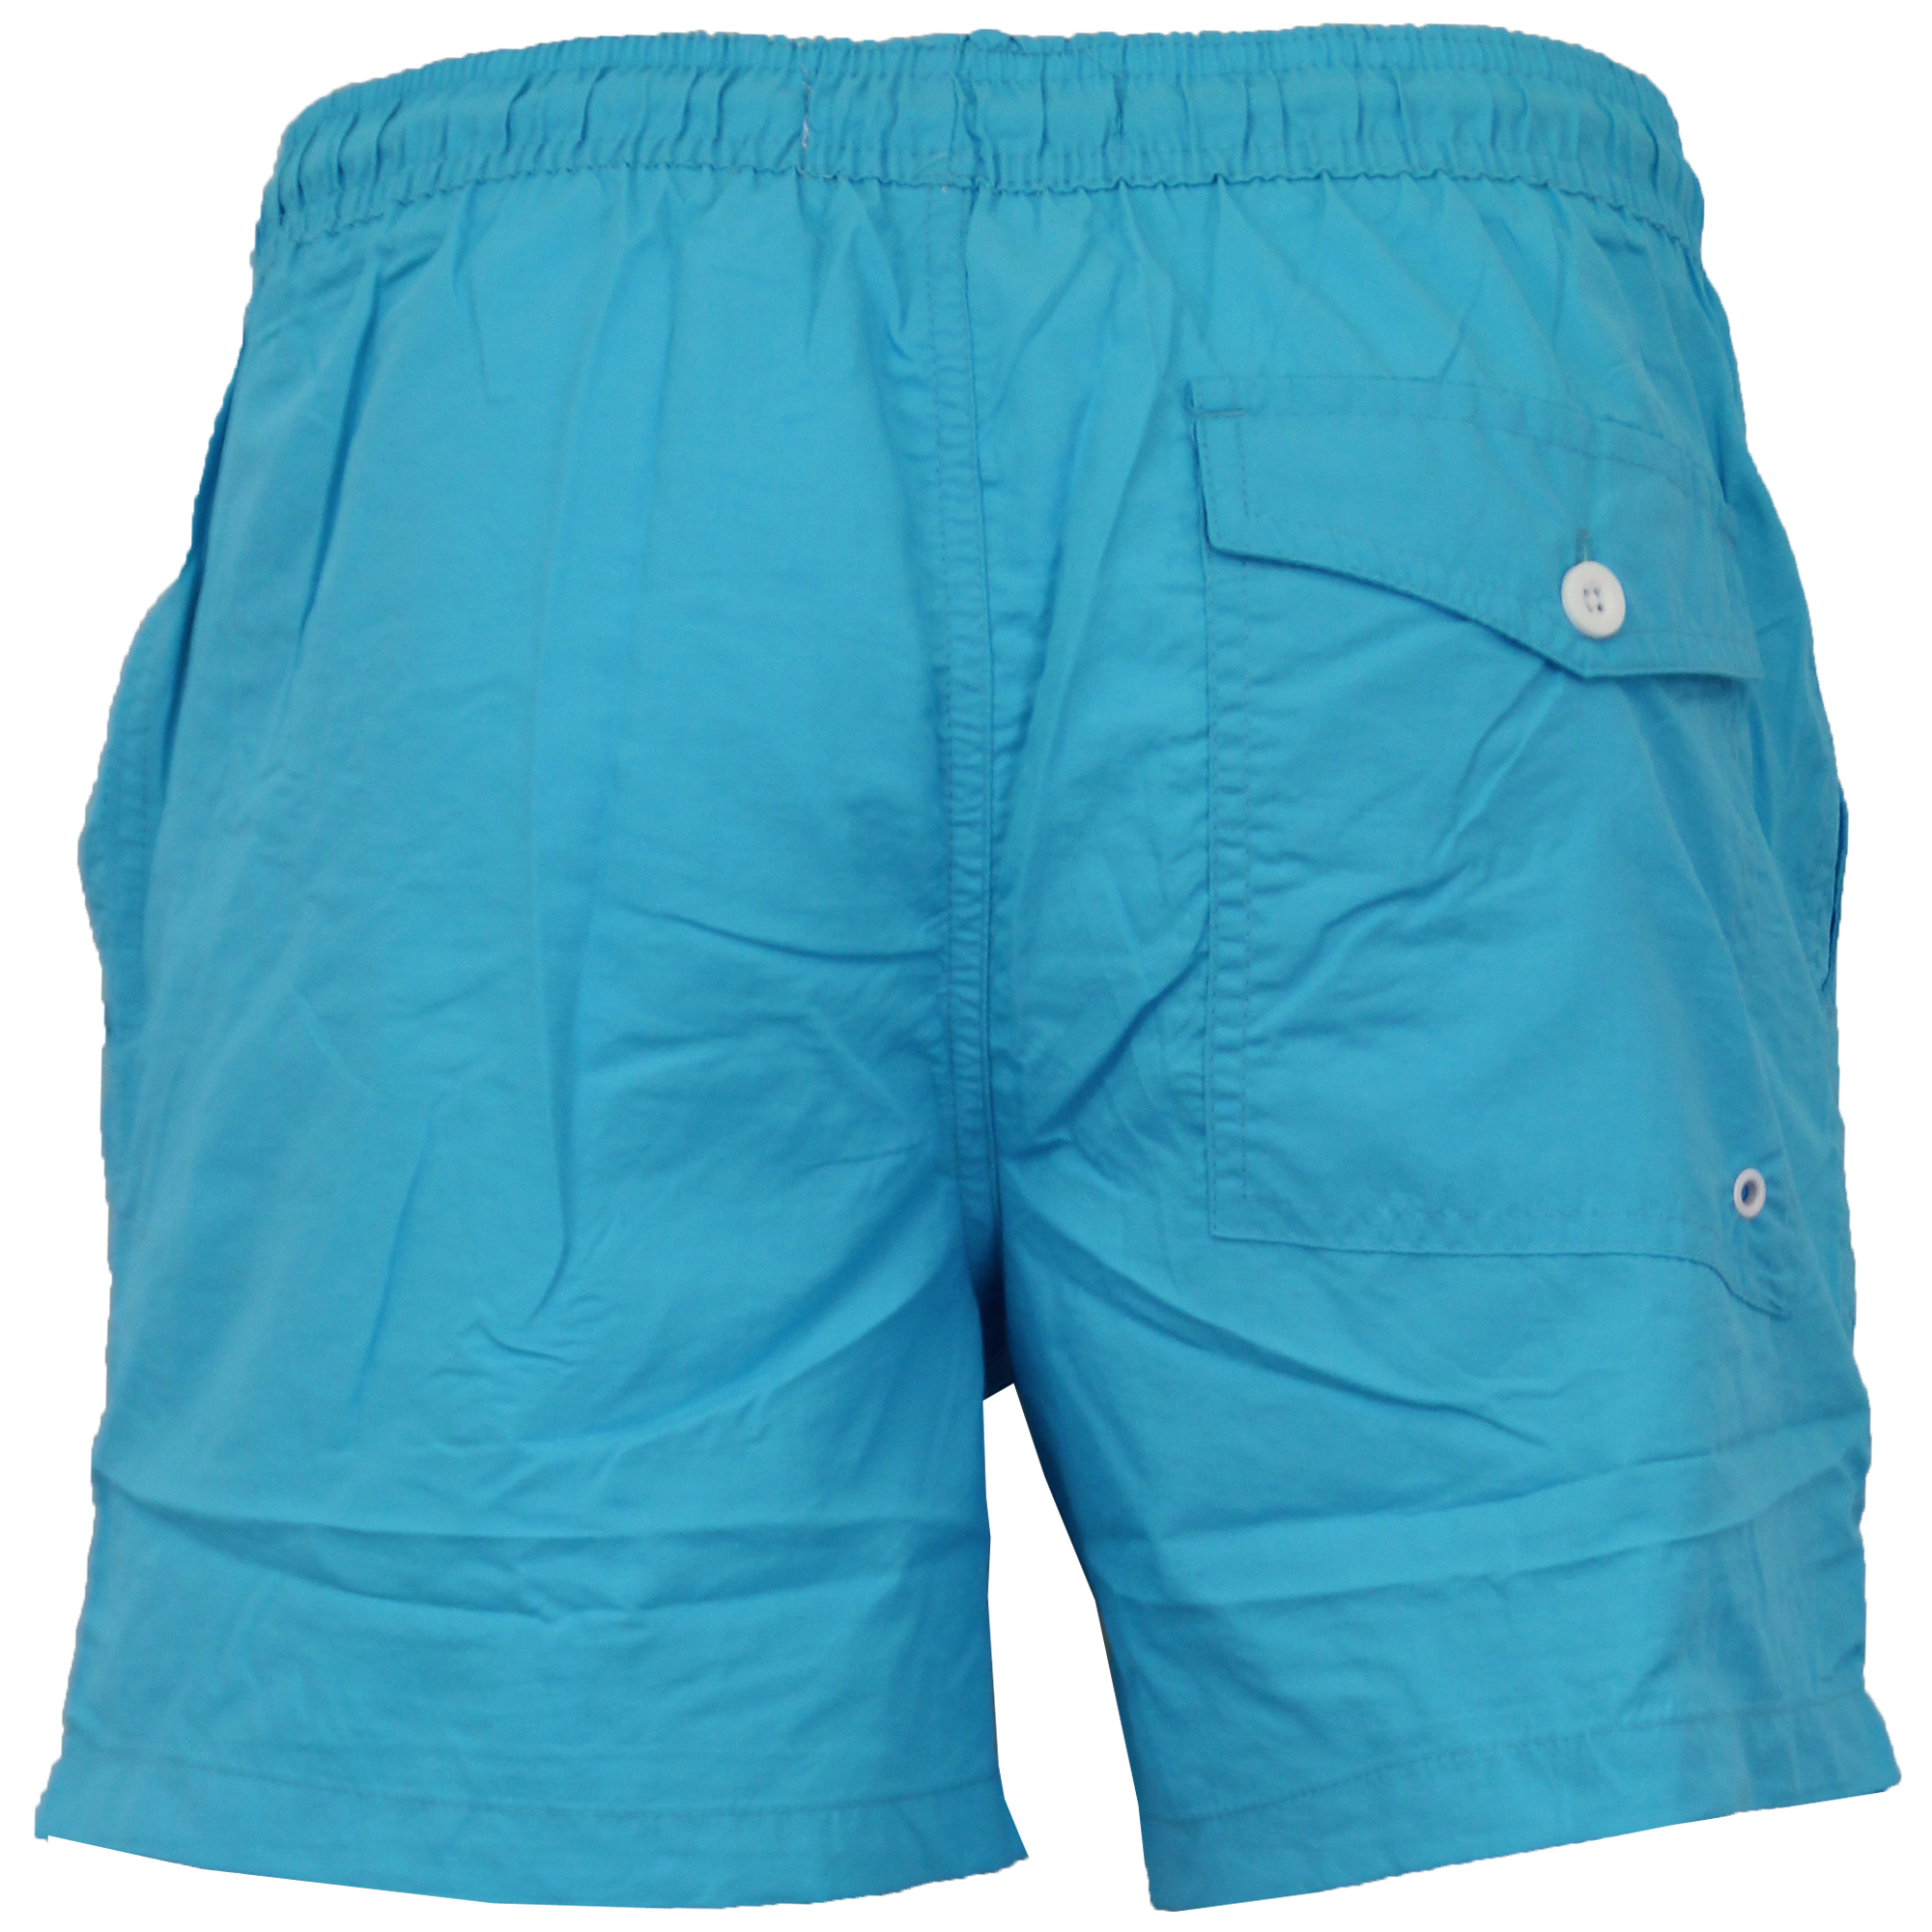 Mens-Swim-Board-Shorts-By-Brave-Soul-Mesh-Lined-New thumbnail 66